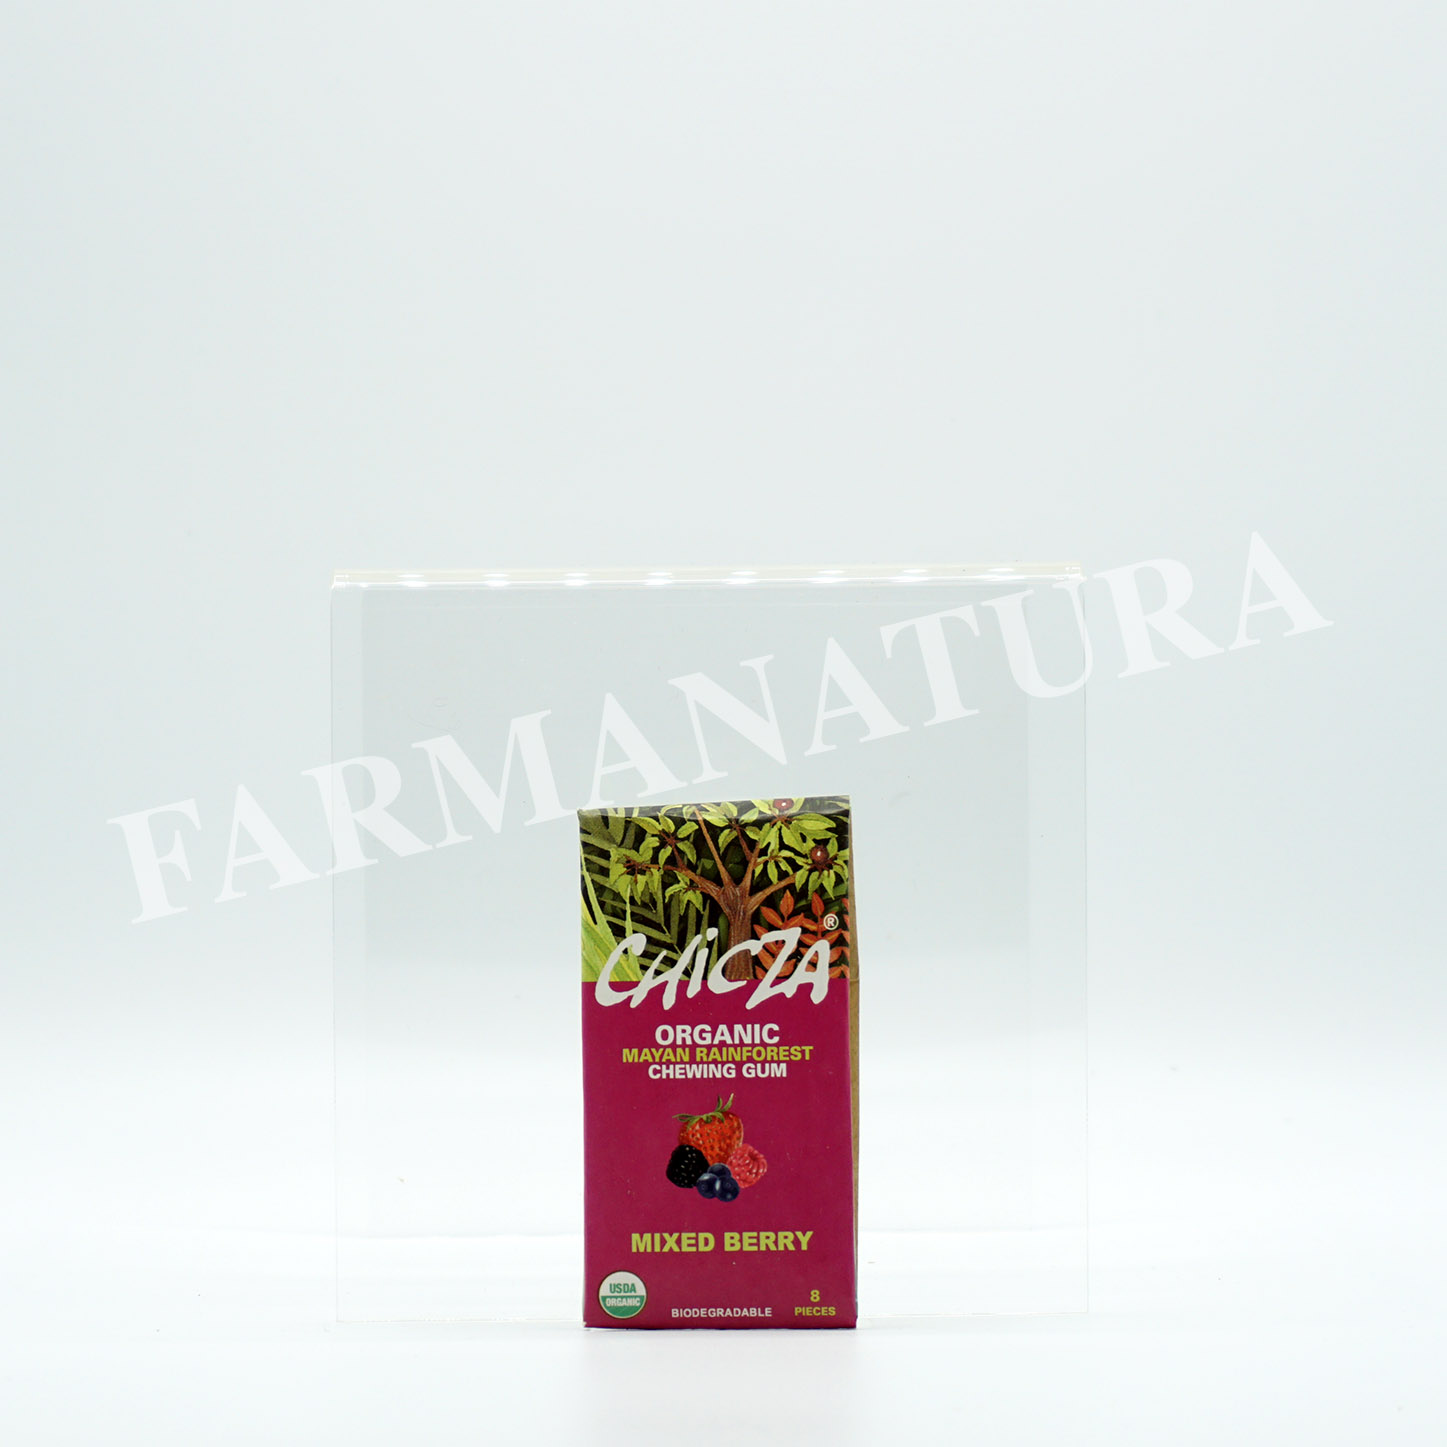 Chicza Organic Rainforest Gum Mixed Berry